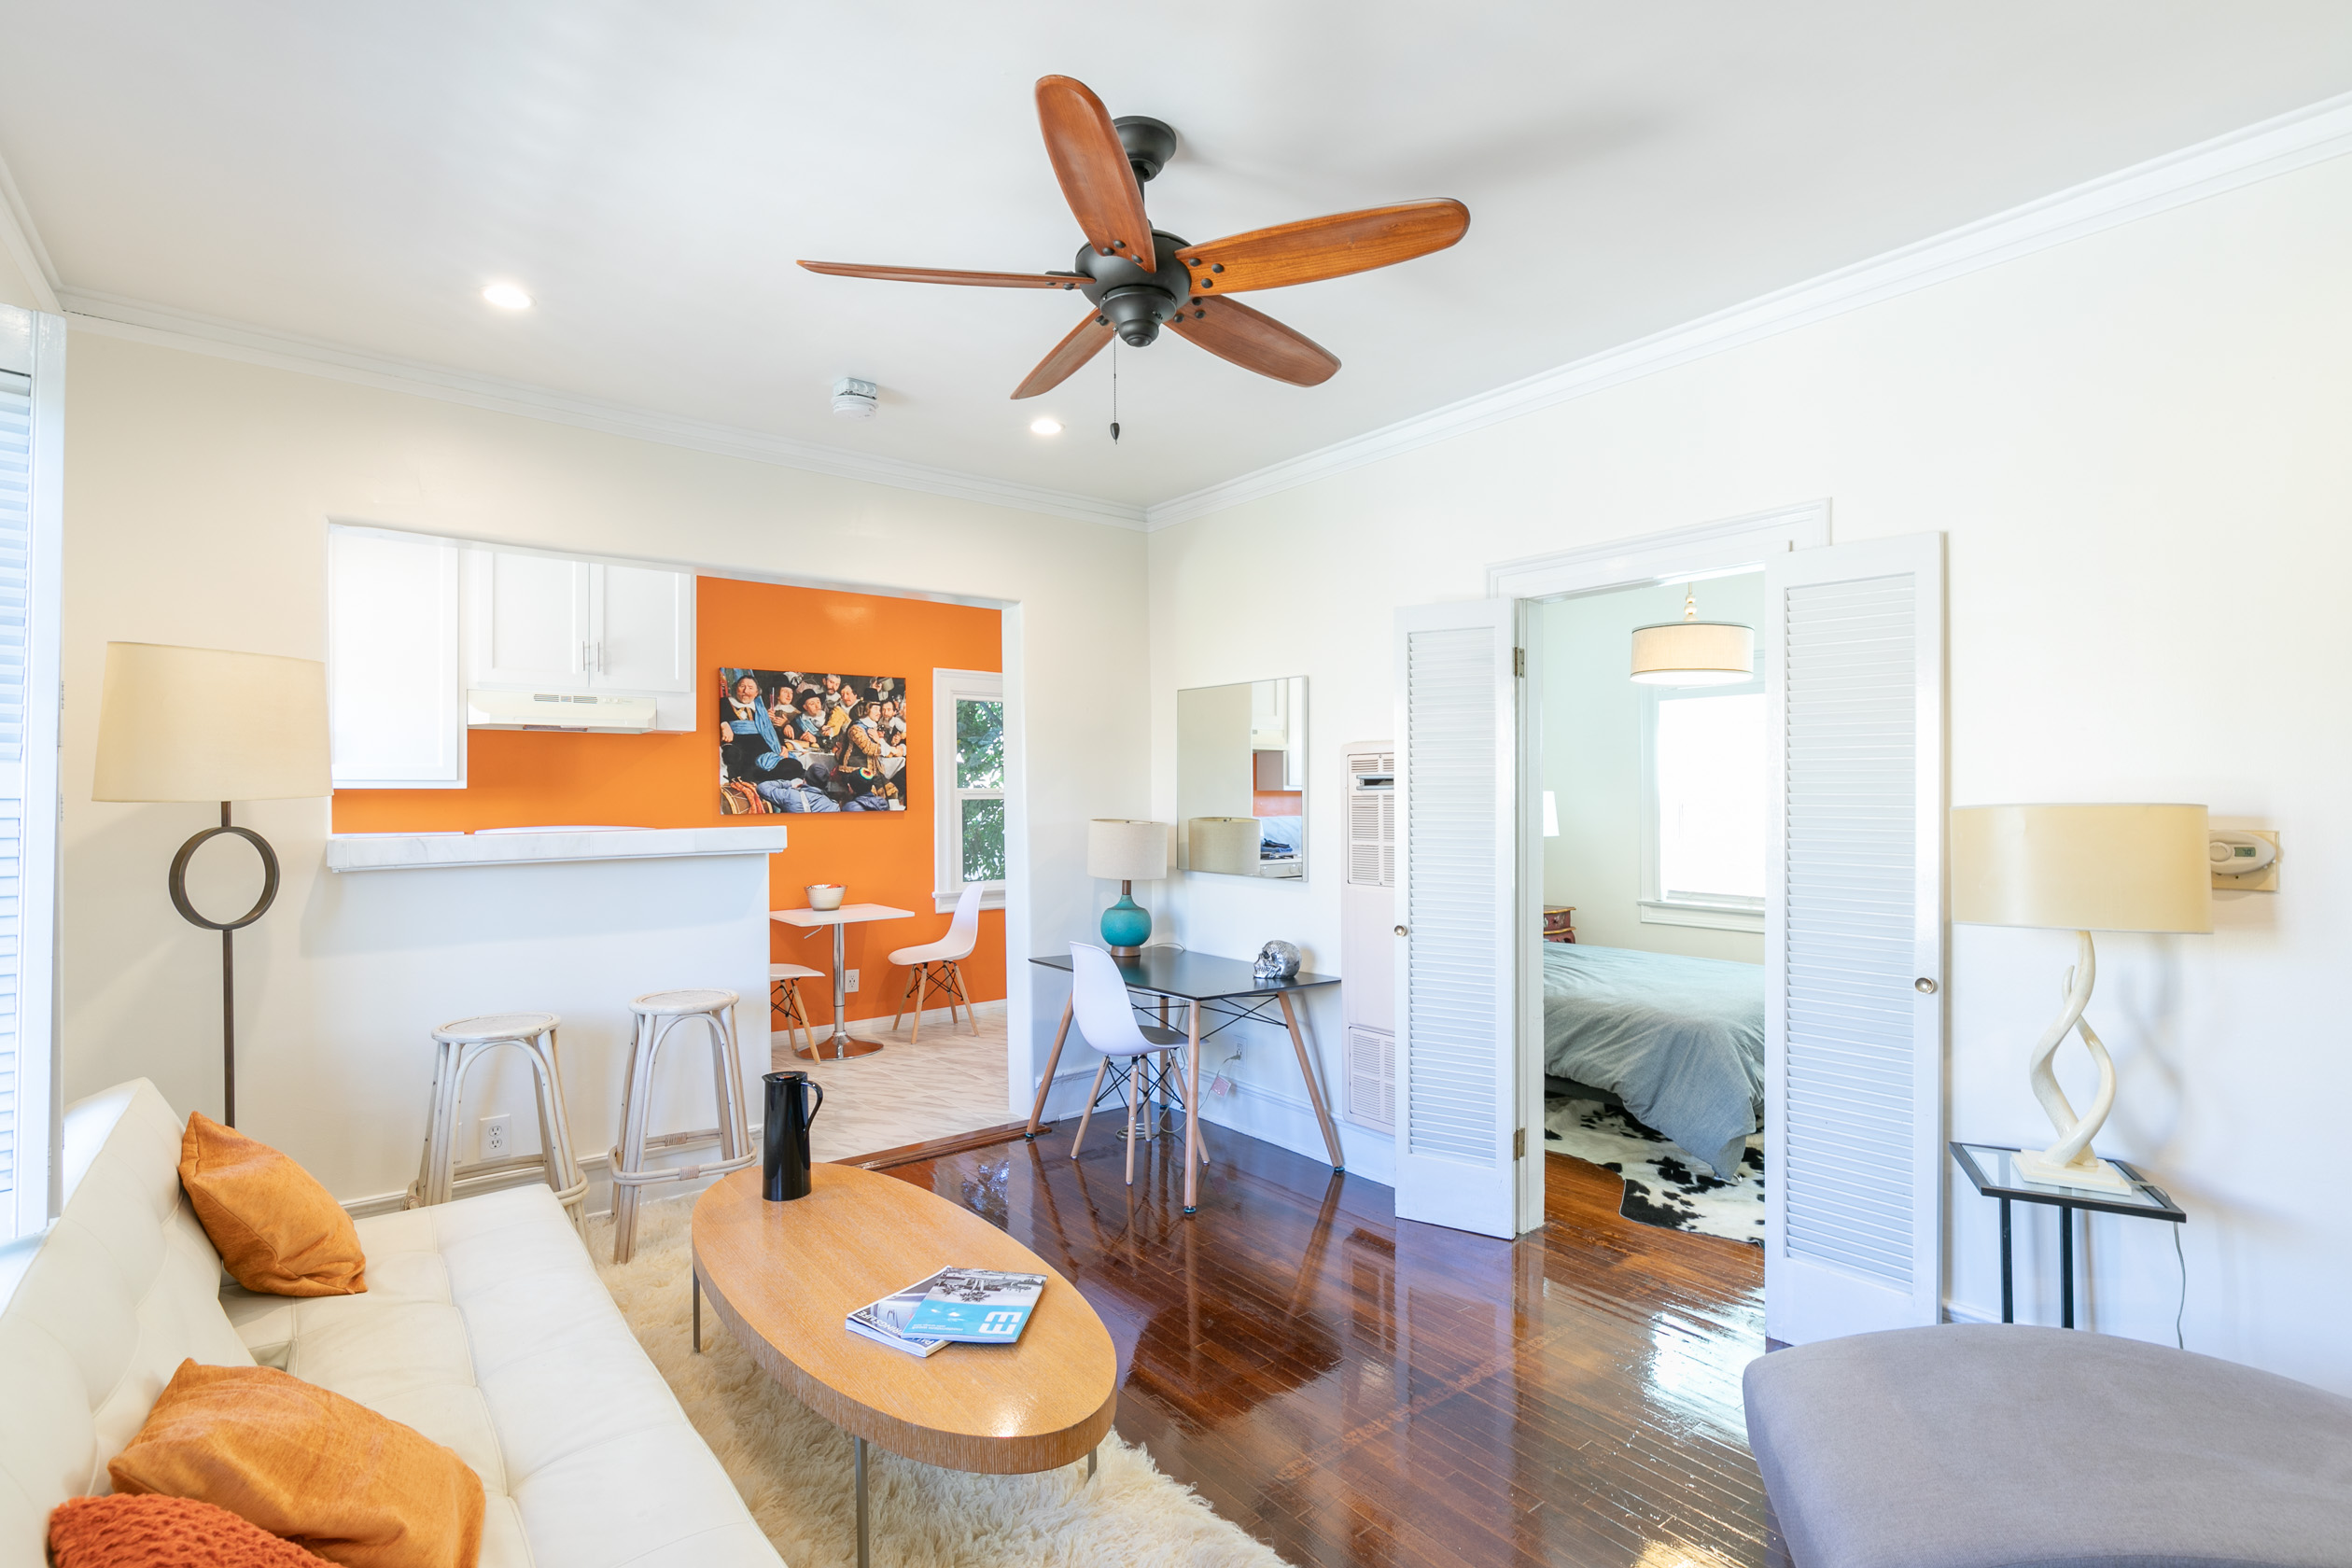 Brand New Renovated Furnished Fabulous 1 Bed | Garage Parking | Laundry in Unit | Central Los Feliz!